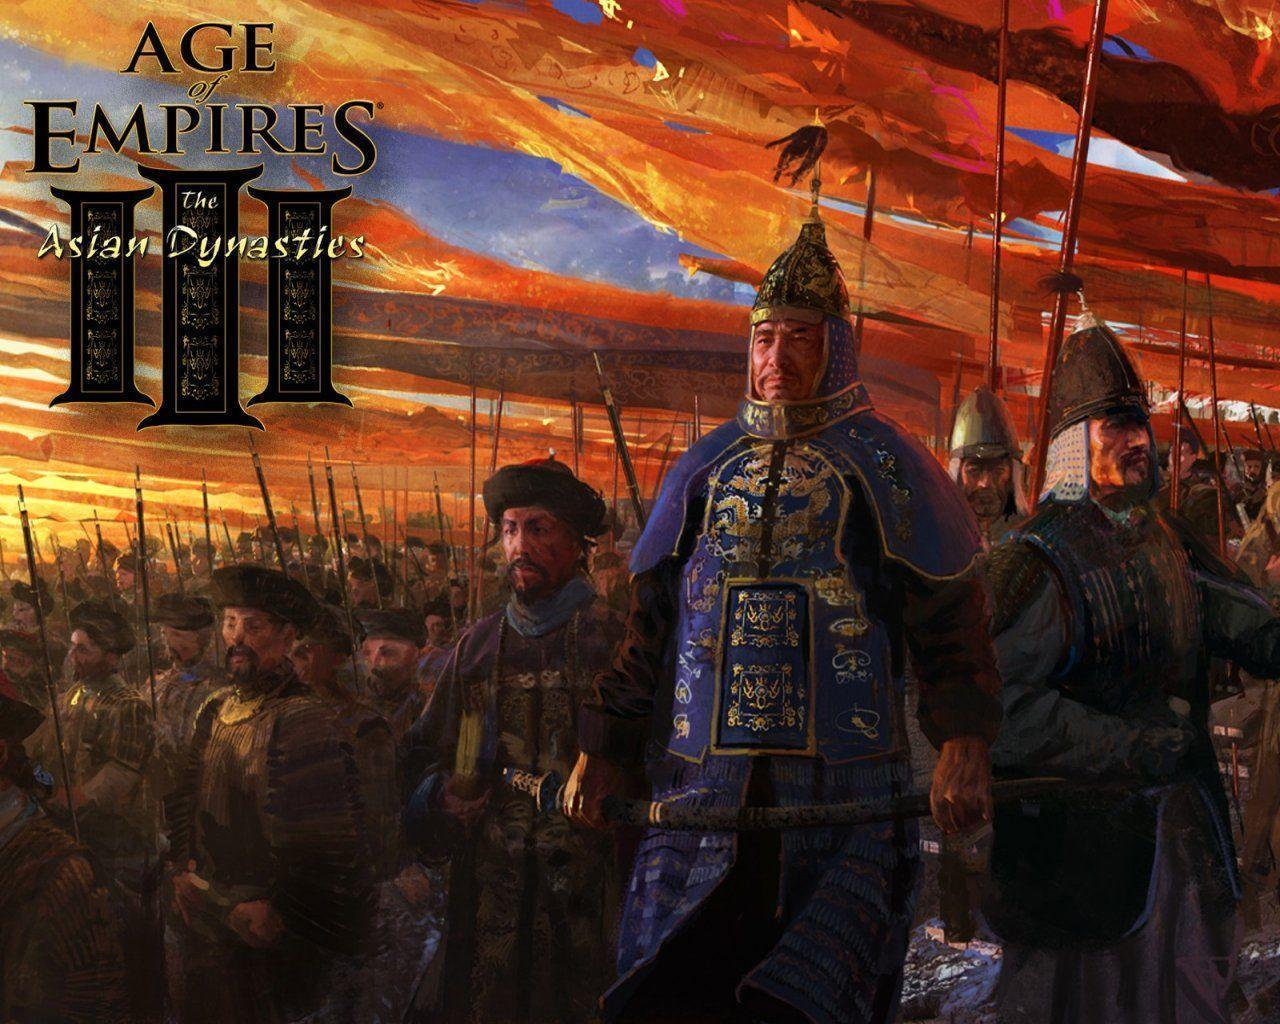 Age of Empires pictures and wallpapers for desktop image